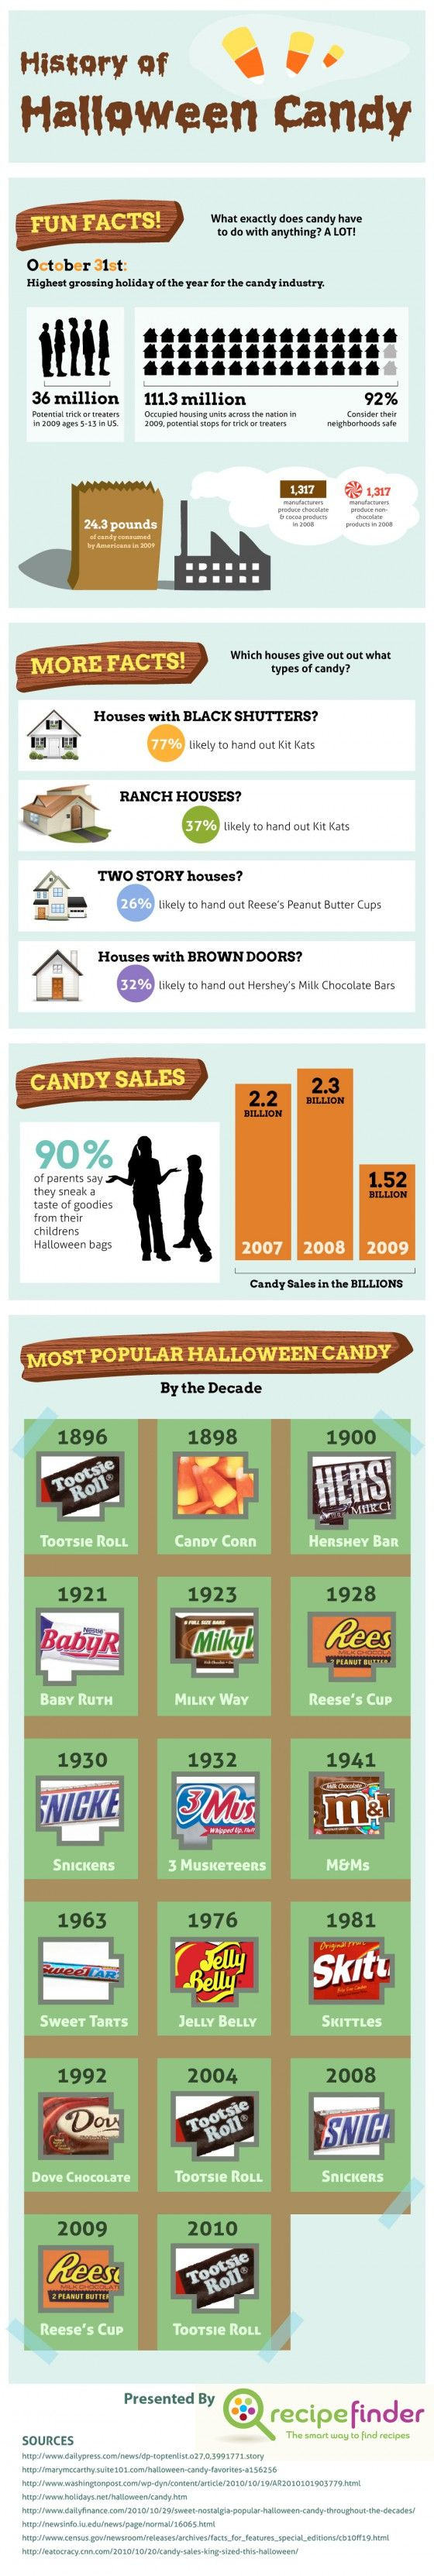 the history of halloween candy - Crazy Halloween Facts